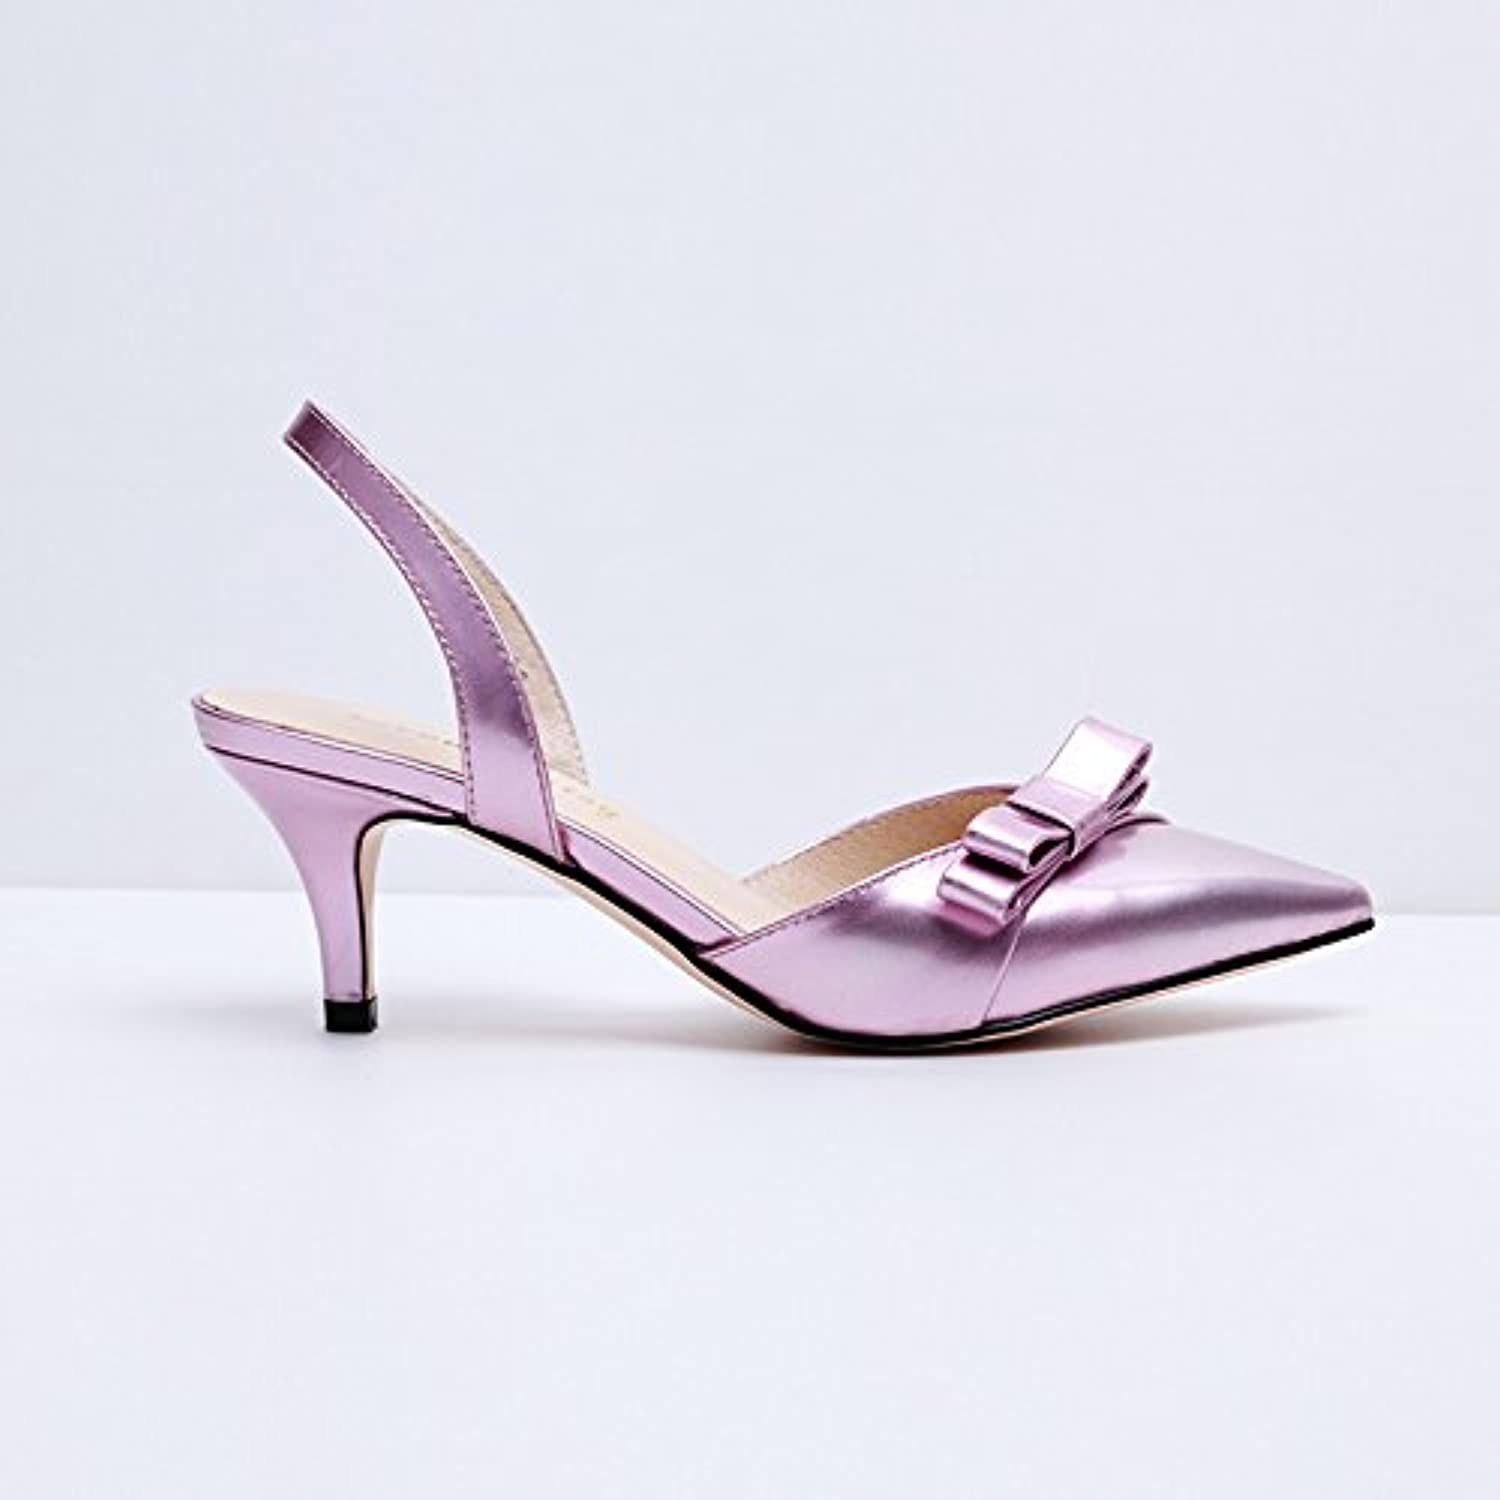 Baotou Hollow Bow high Heel Sandals Fashion Leather shoes, Powder, 37